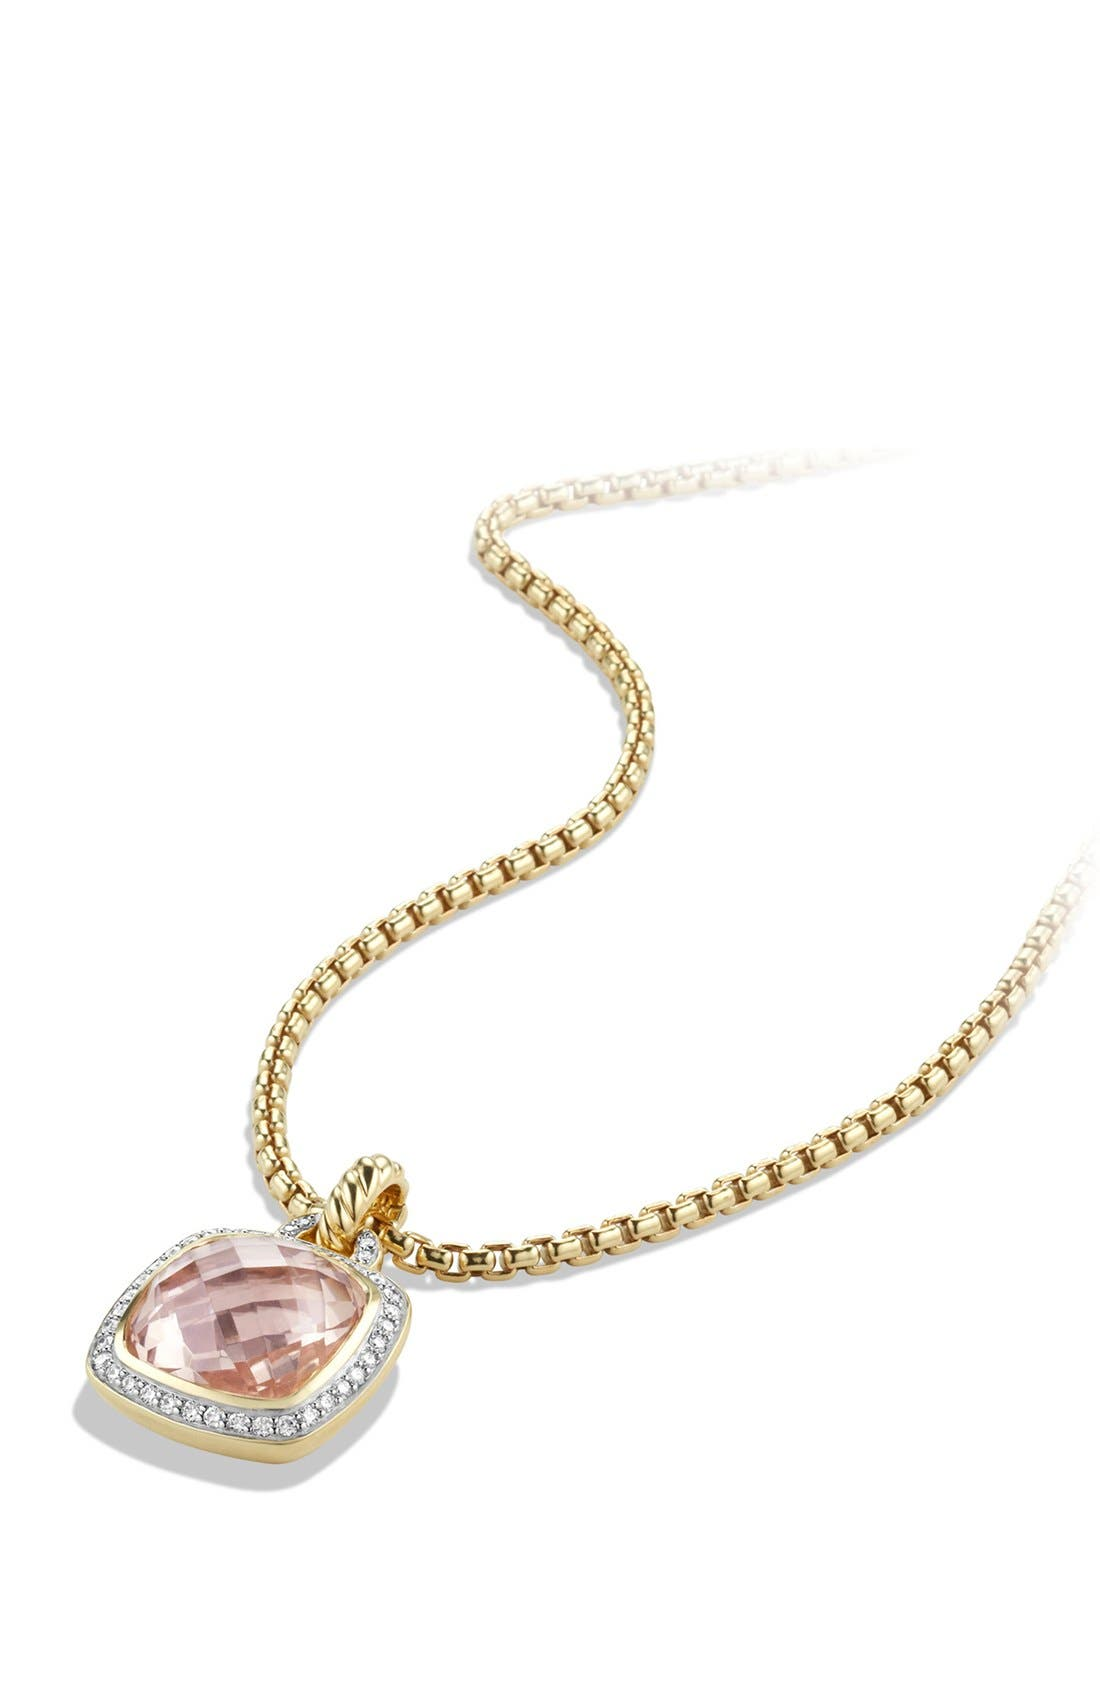 'Albion' Pendant with Lemon Citrine and Diamonds in 18k Gold,                             Alternate thumbnail 2, color,                             Morganite